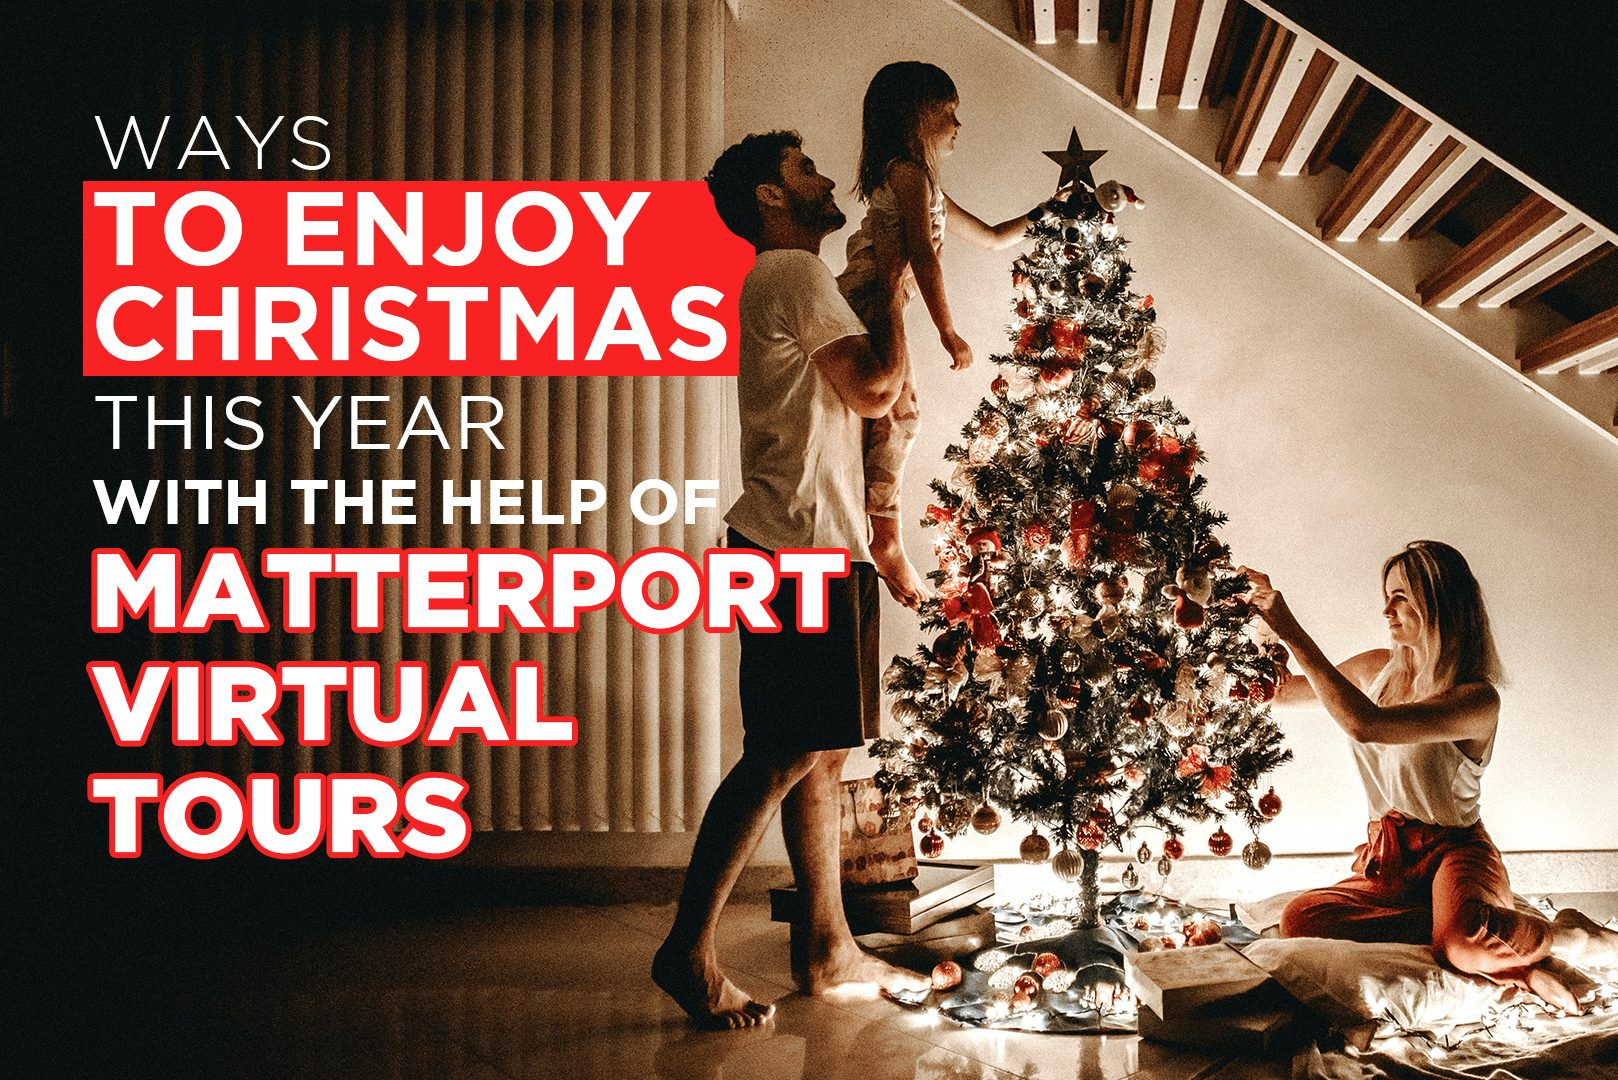 Ways To Enjoy Christmas This Year With The Help Of Matterport Virtual Tours